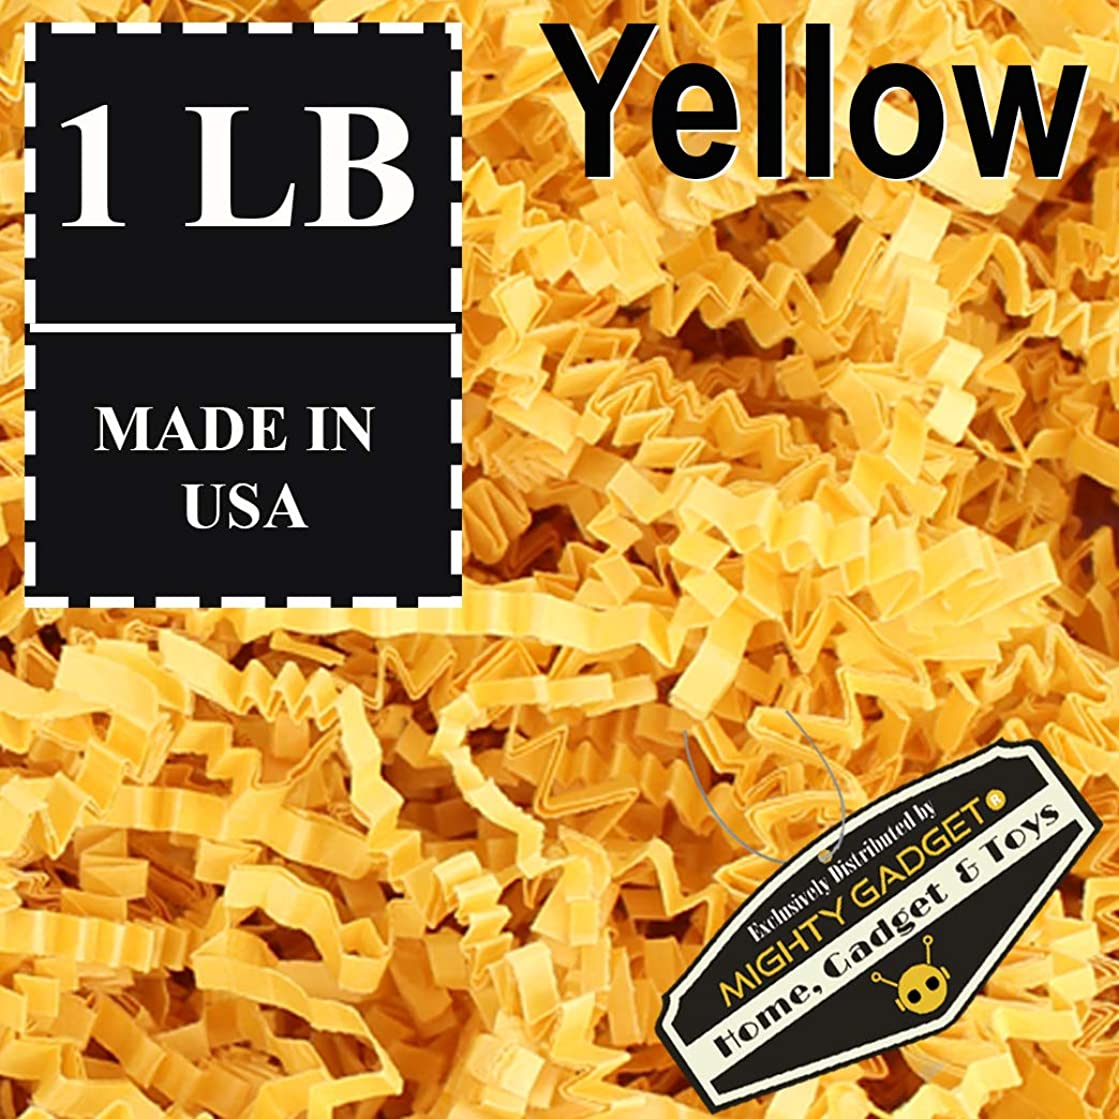 Mighty Gadget (R) 1 LB Yellow Crinkle Cut Paper Shred Filler for Gift Wrapping & Basket Filling